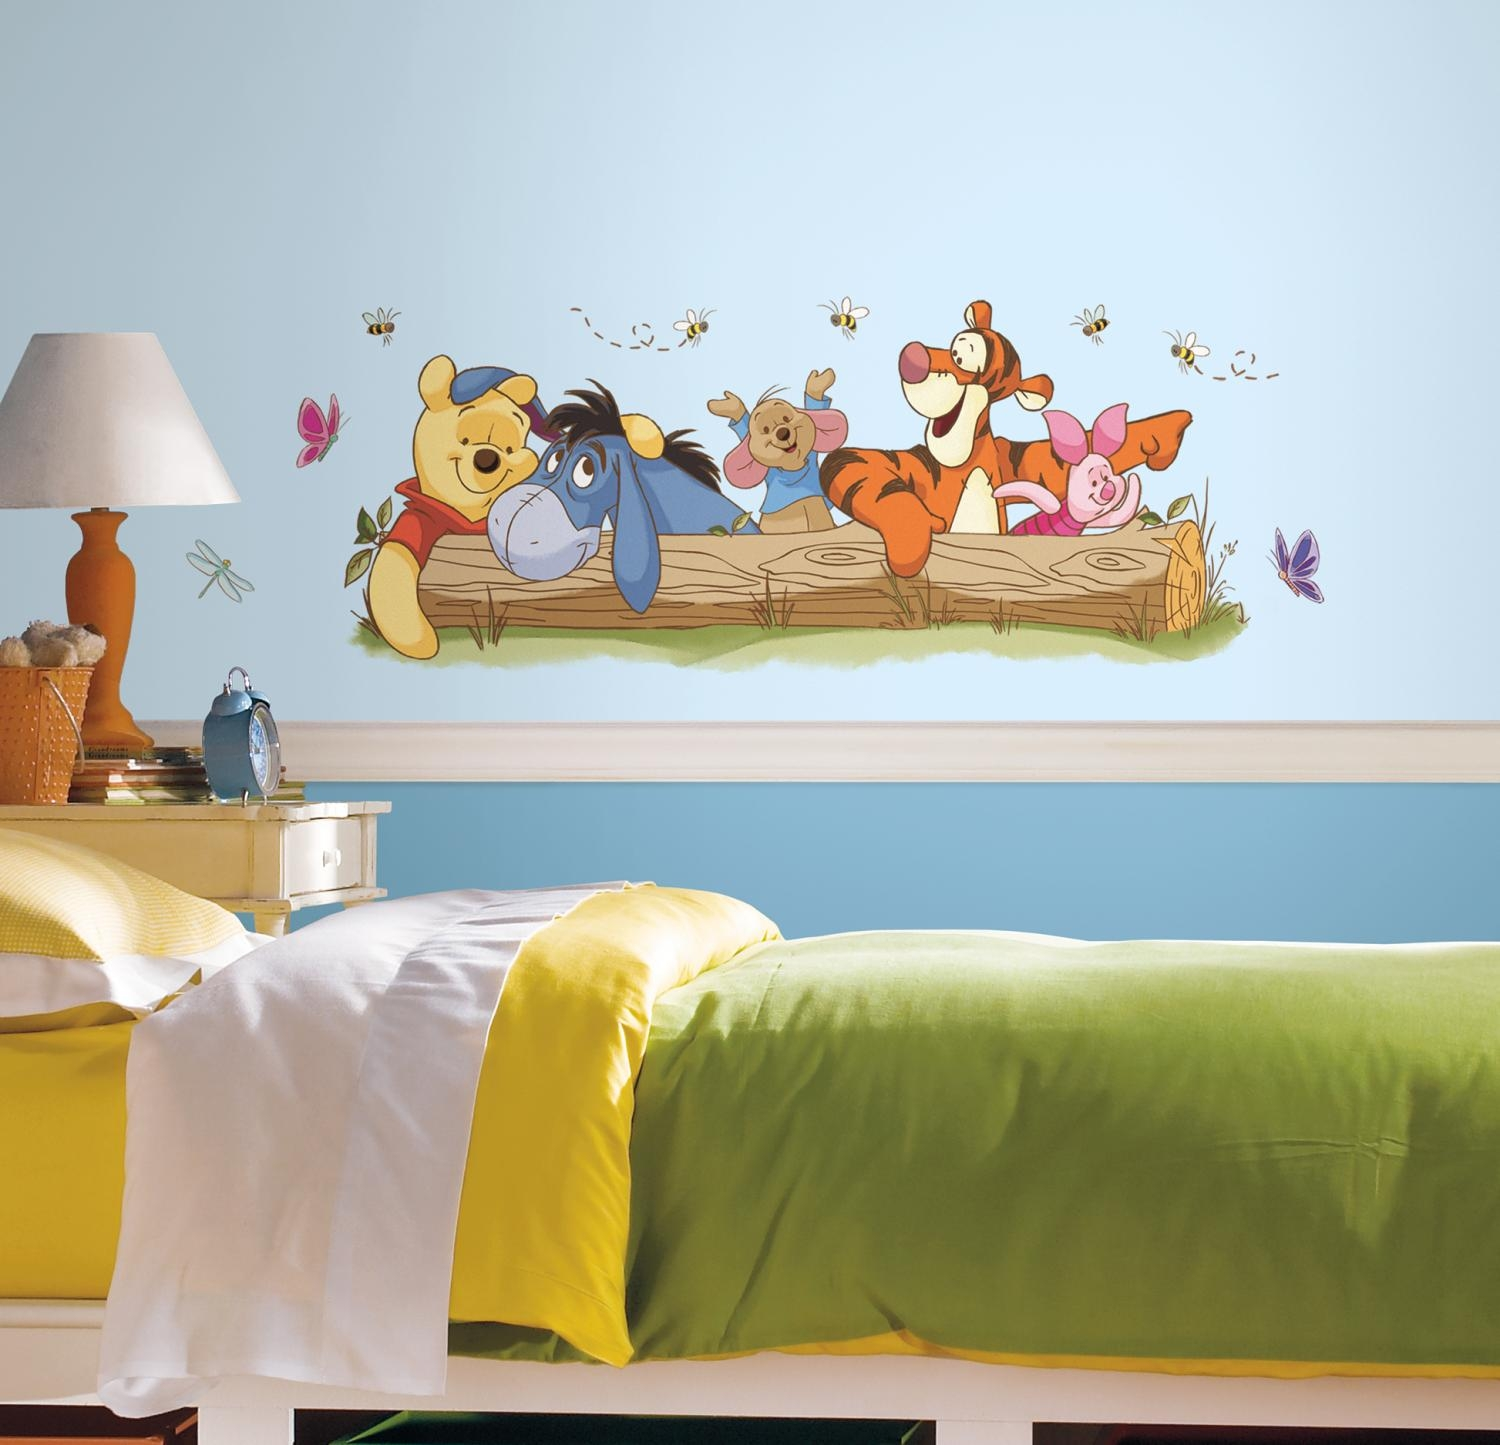 Rmk2553Gm Winnie The Pooh – Outdoor Fun Giant Wall Sticker Within Winnie The Pooh Wall Decor (Image 9 of 20)